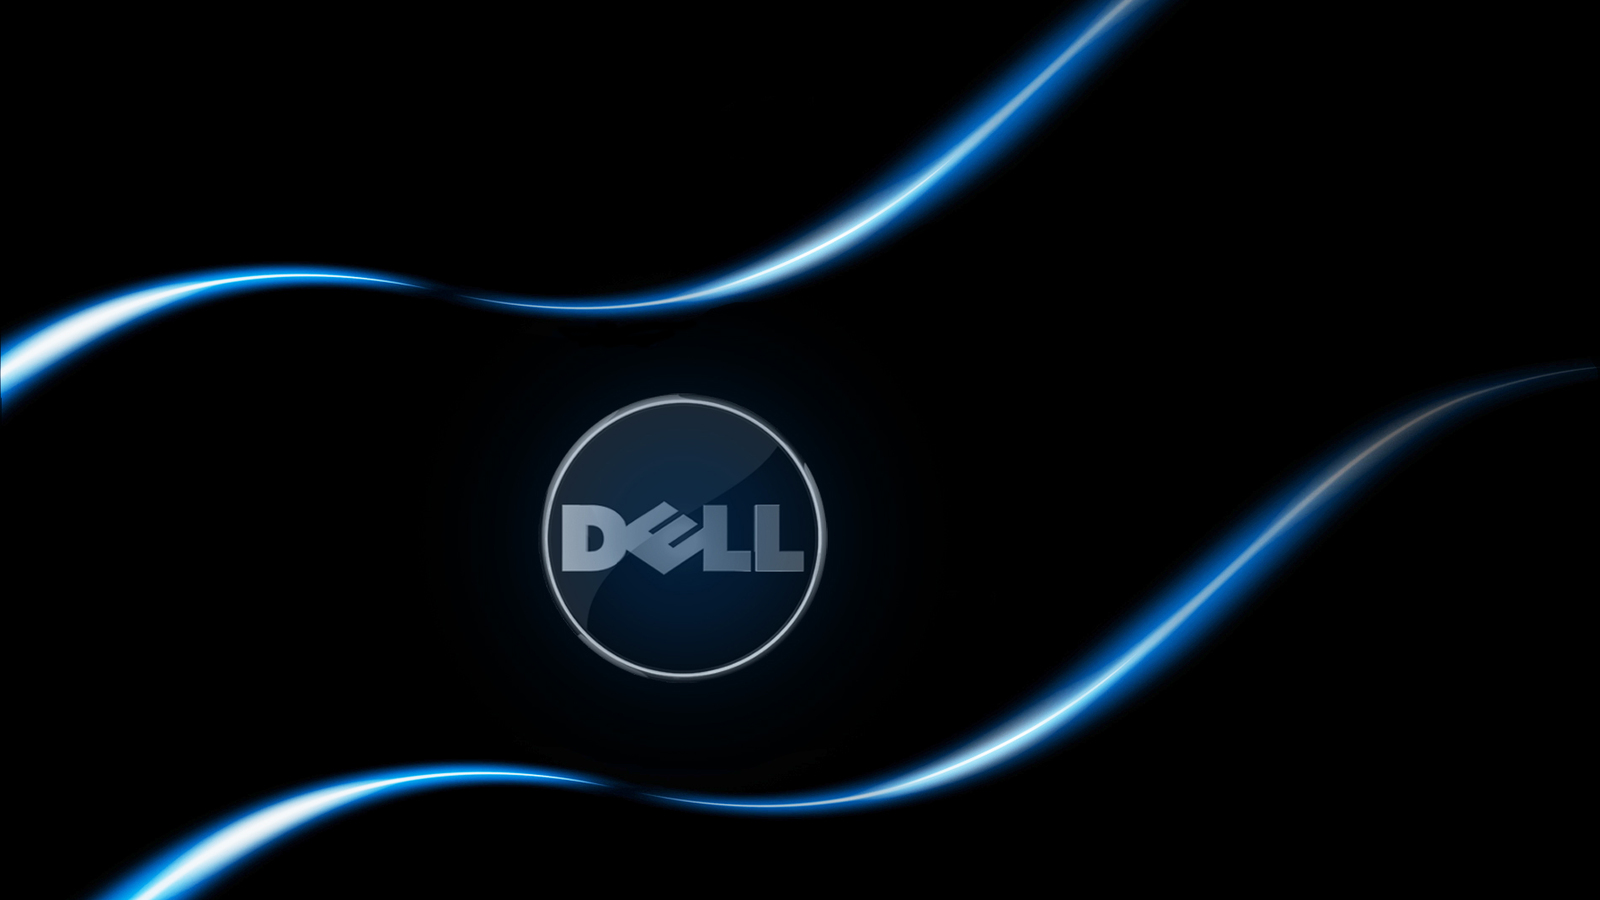 Pocitac furthermore Wiring Diagram Dell Dimension as well Dell also Watch in addition 370741. on dell dimension 3000